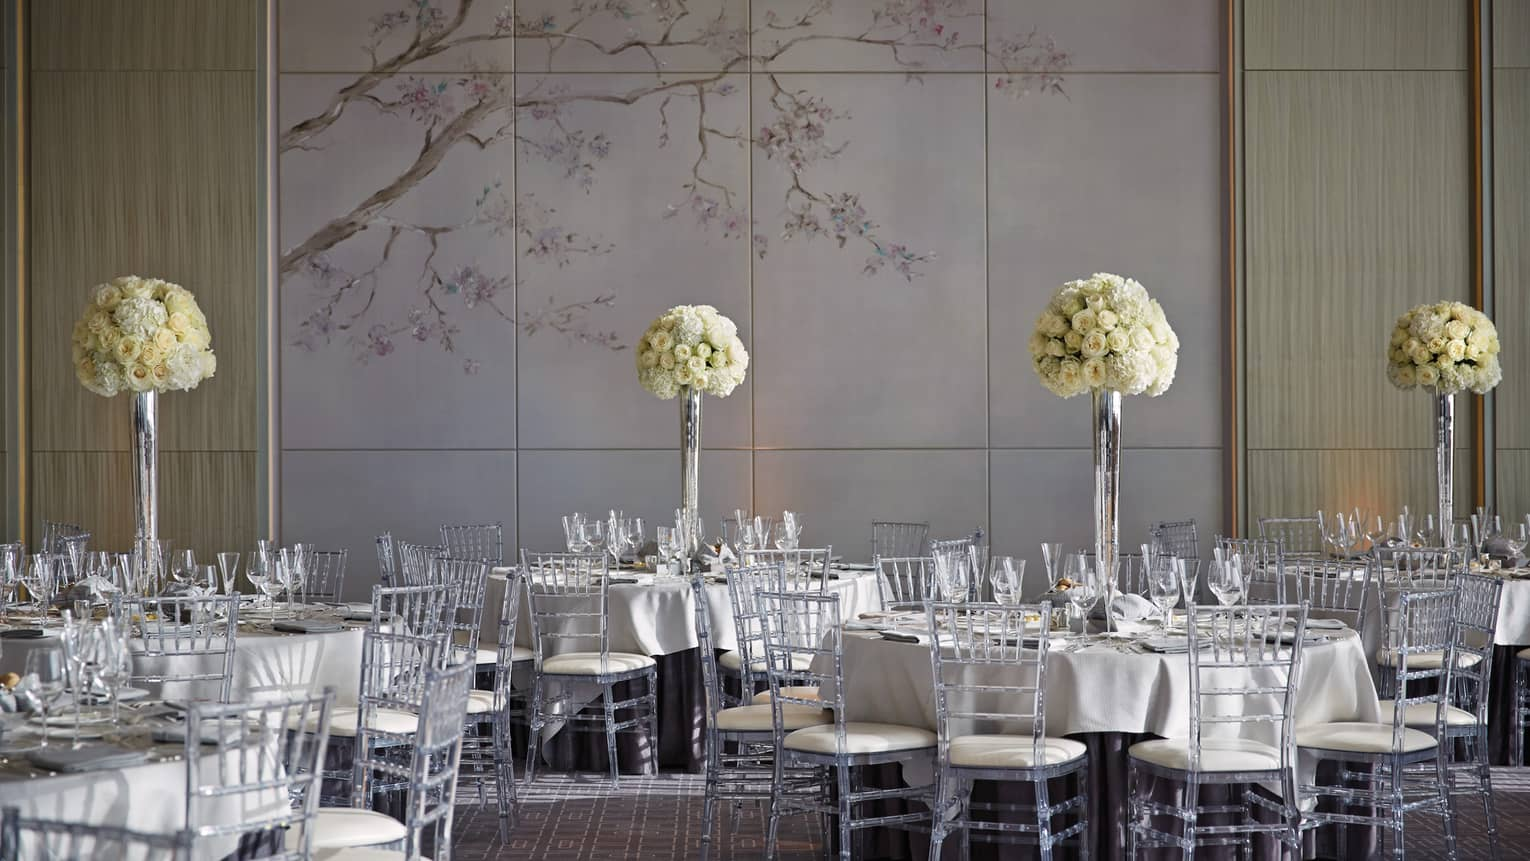 Vinci ballroom banquet dining tables with tall white flowers, accent wall